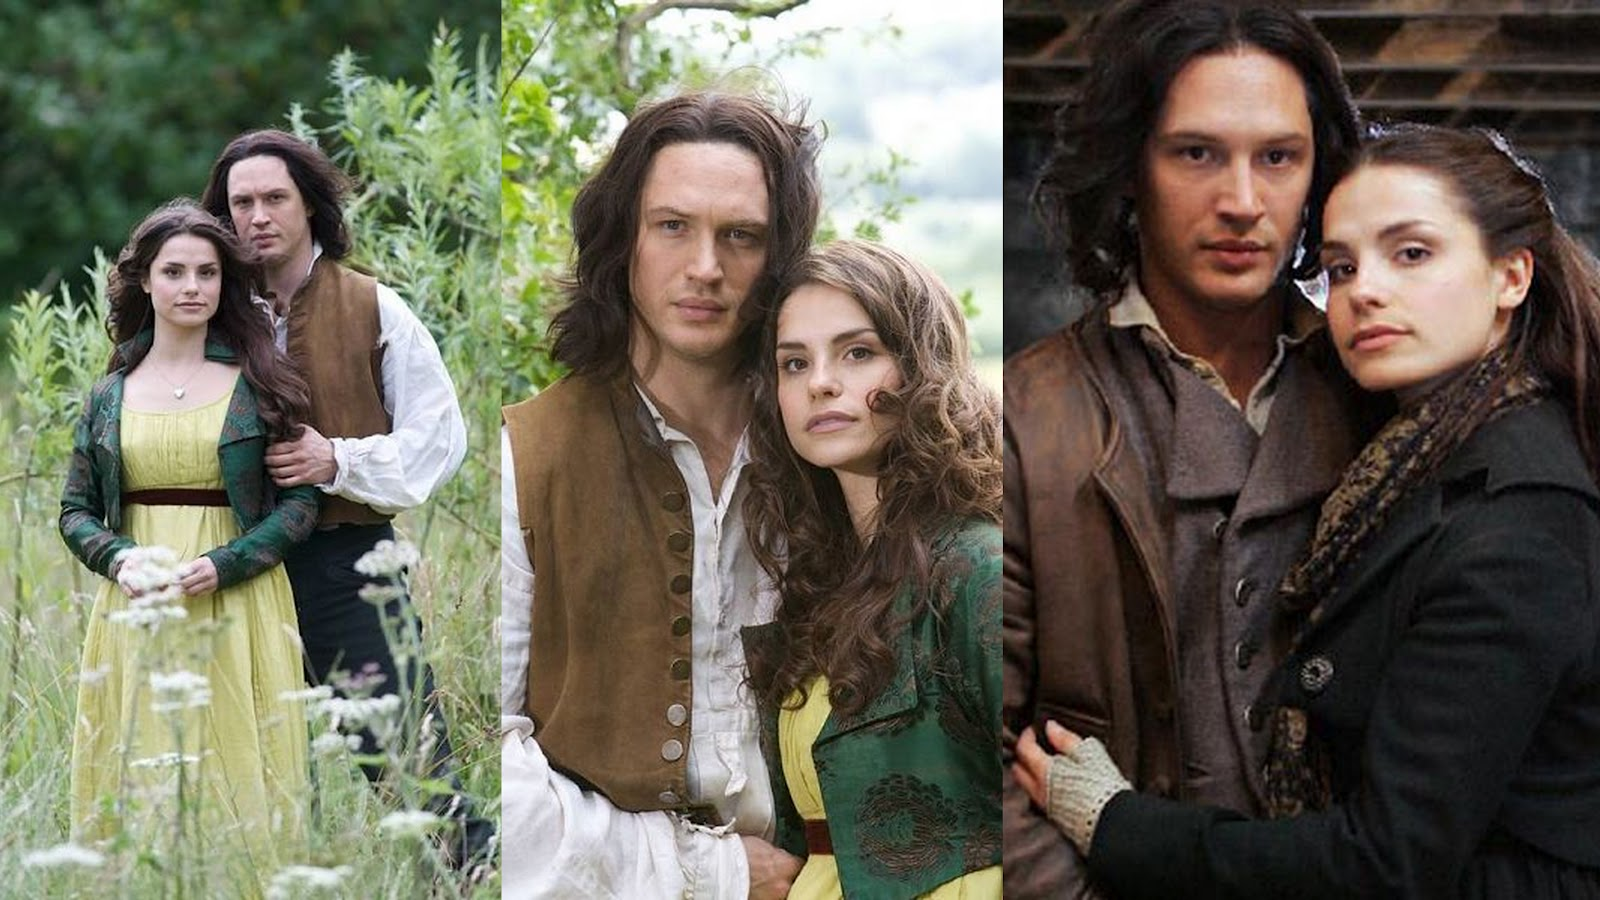 wuthering heights archives collar city brownstone charlotte riley and tom hardy collage